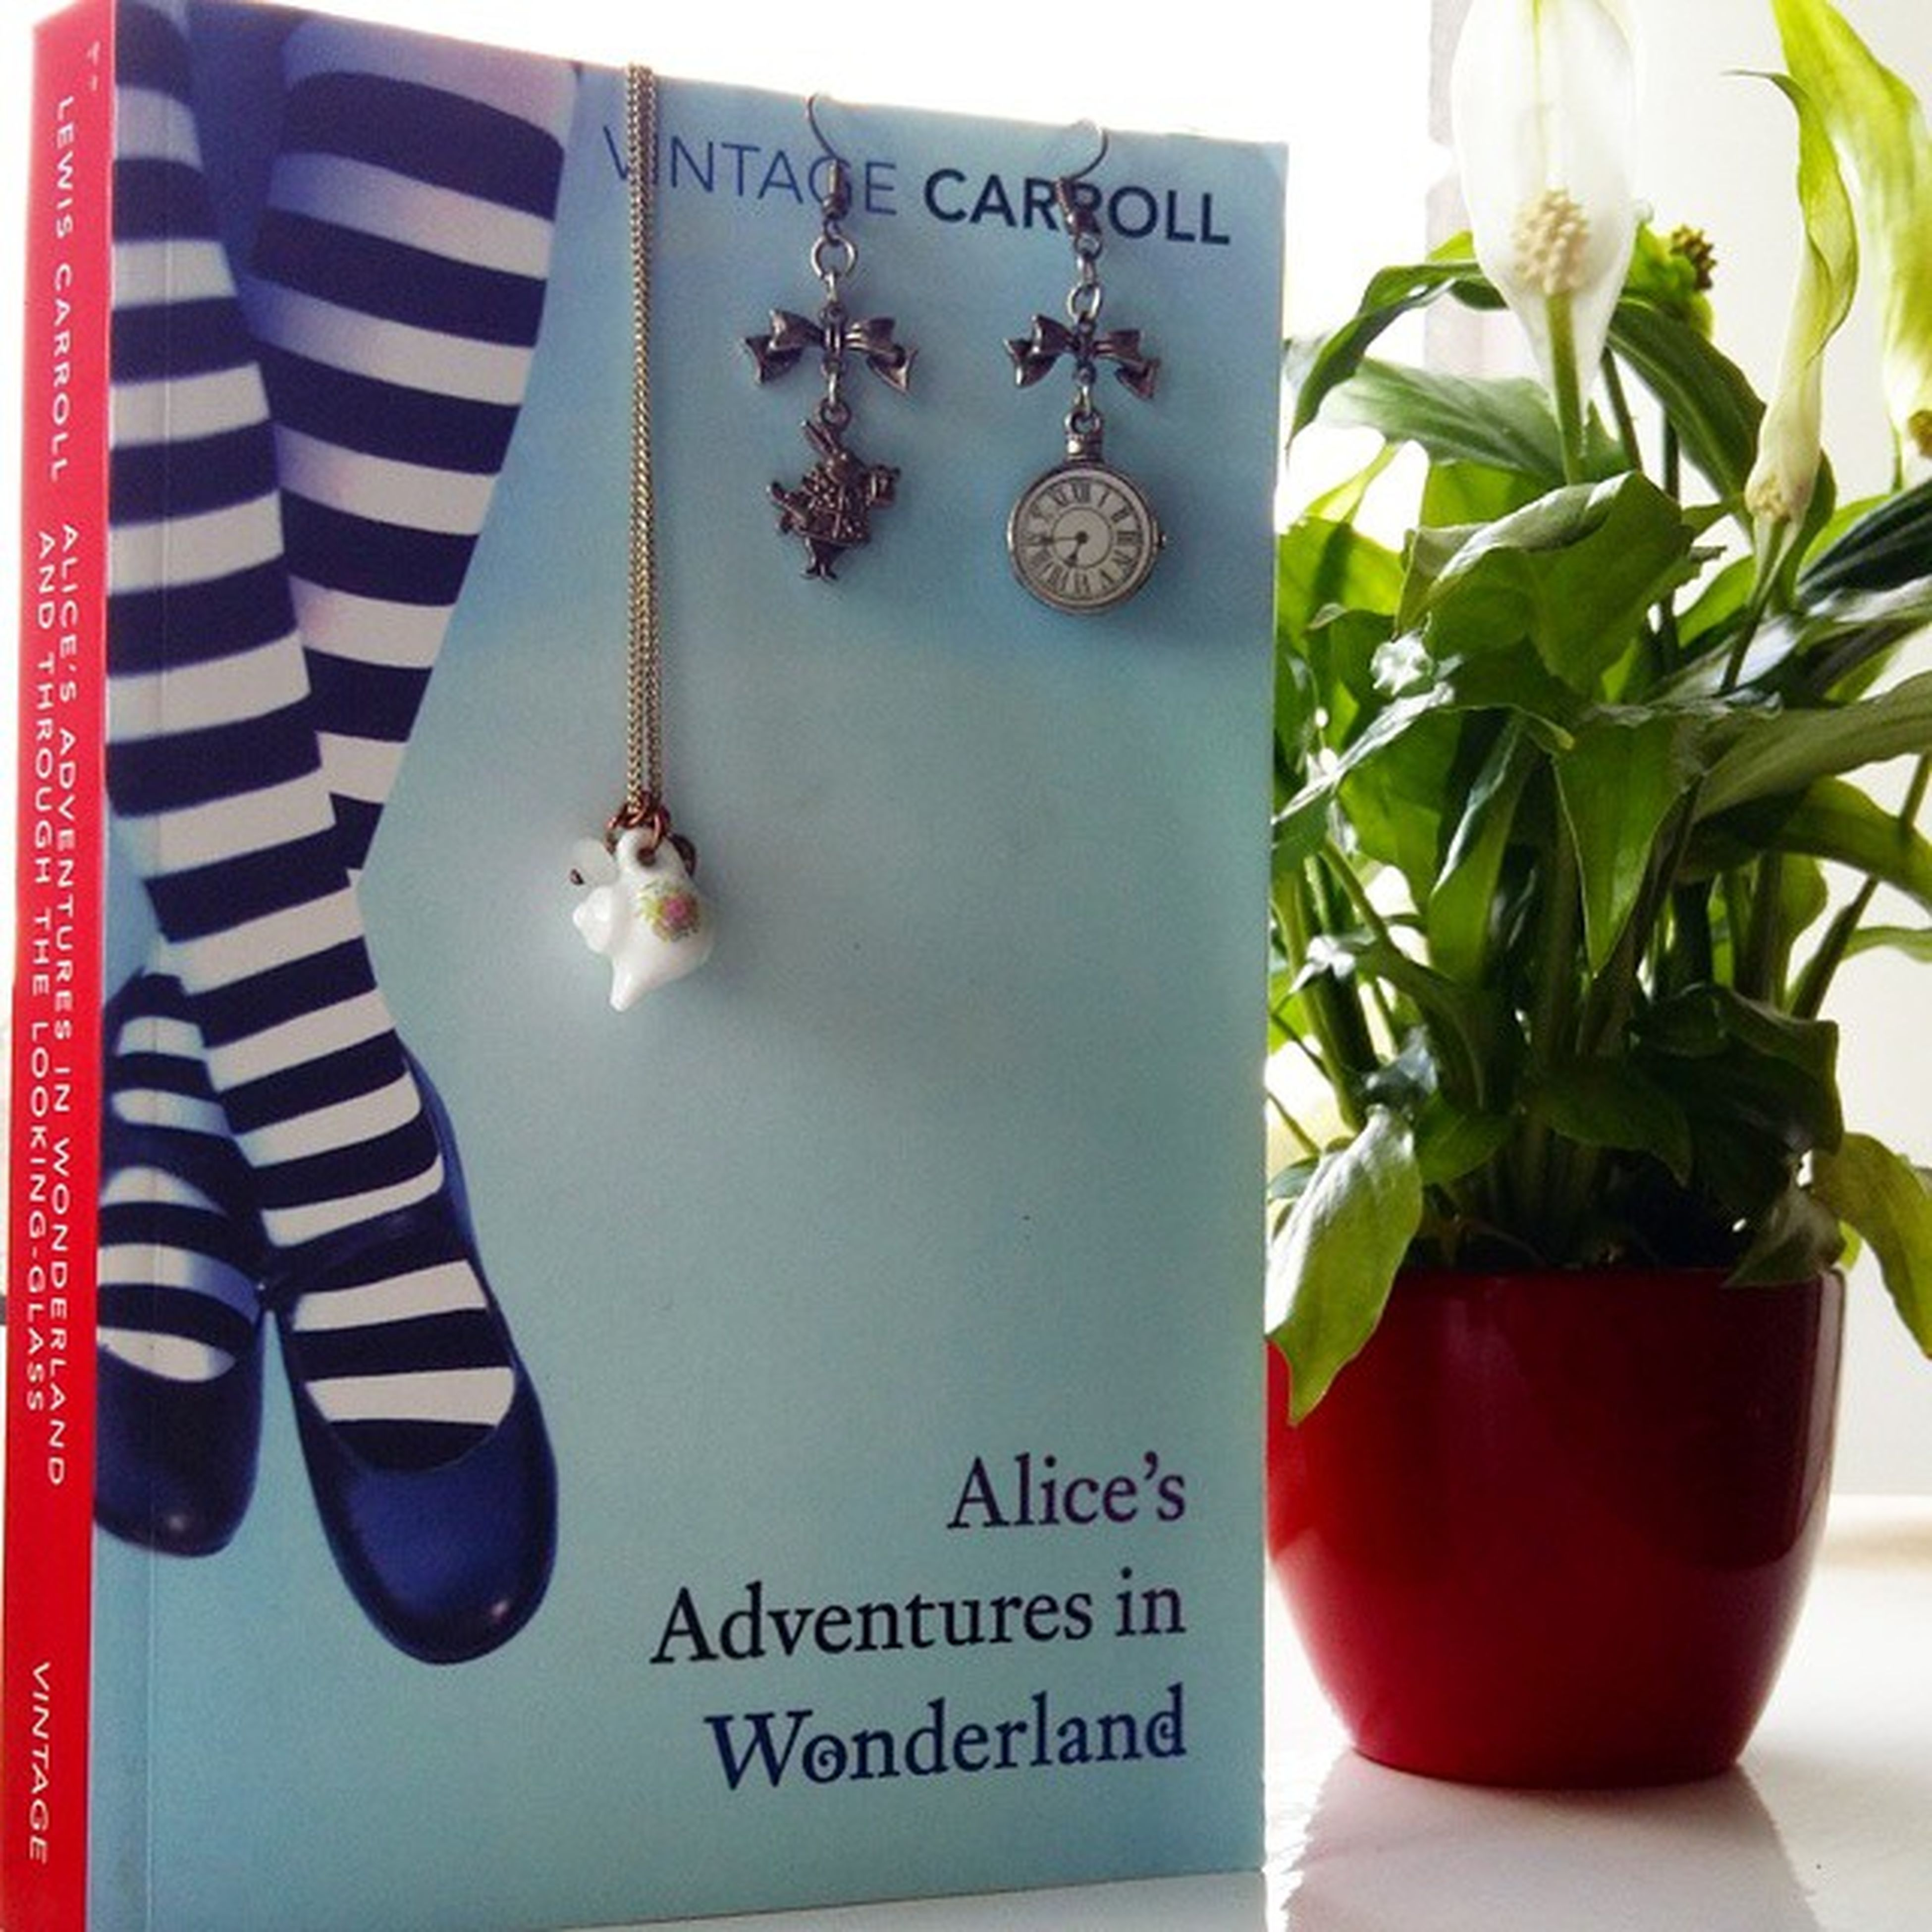 I was tagged in Bookandjewelry by @read.ing.books and @thomasthespook so here is my Alice In Wonderland earrings from @twopennylane and a cute tea cup necklace from Accessories Aliceinwonderland LewisCarroll Childrensbooks Reading Jewelry Twopennylane Twopennylanejewellery Accessories TeaCup Whiterabbit Books Bookstagram Bibliophile  Book British Bookphotography Bookblog Bookporn Booknerd